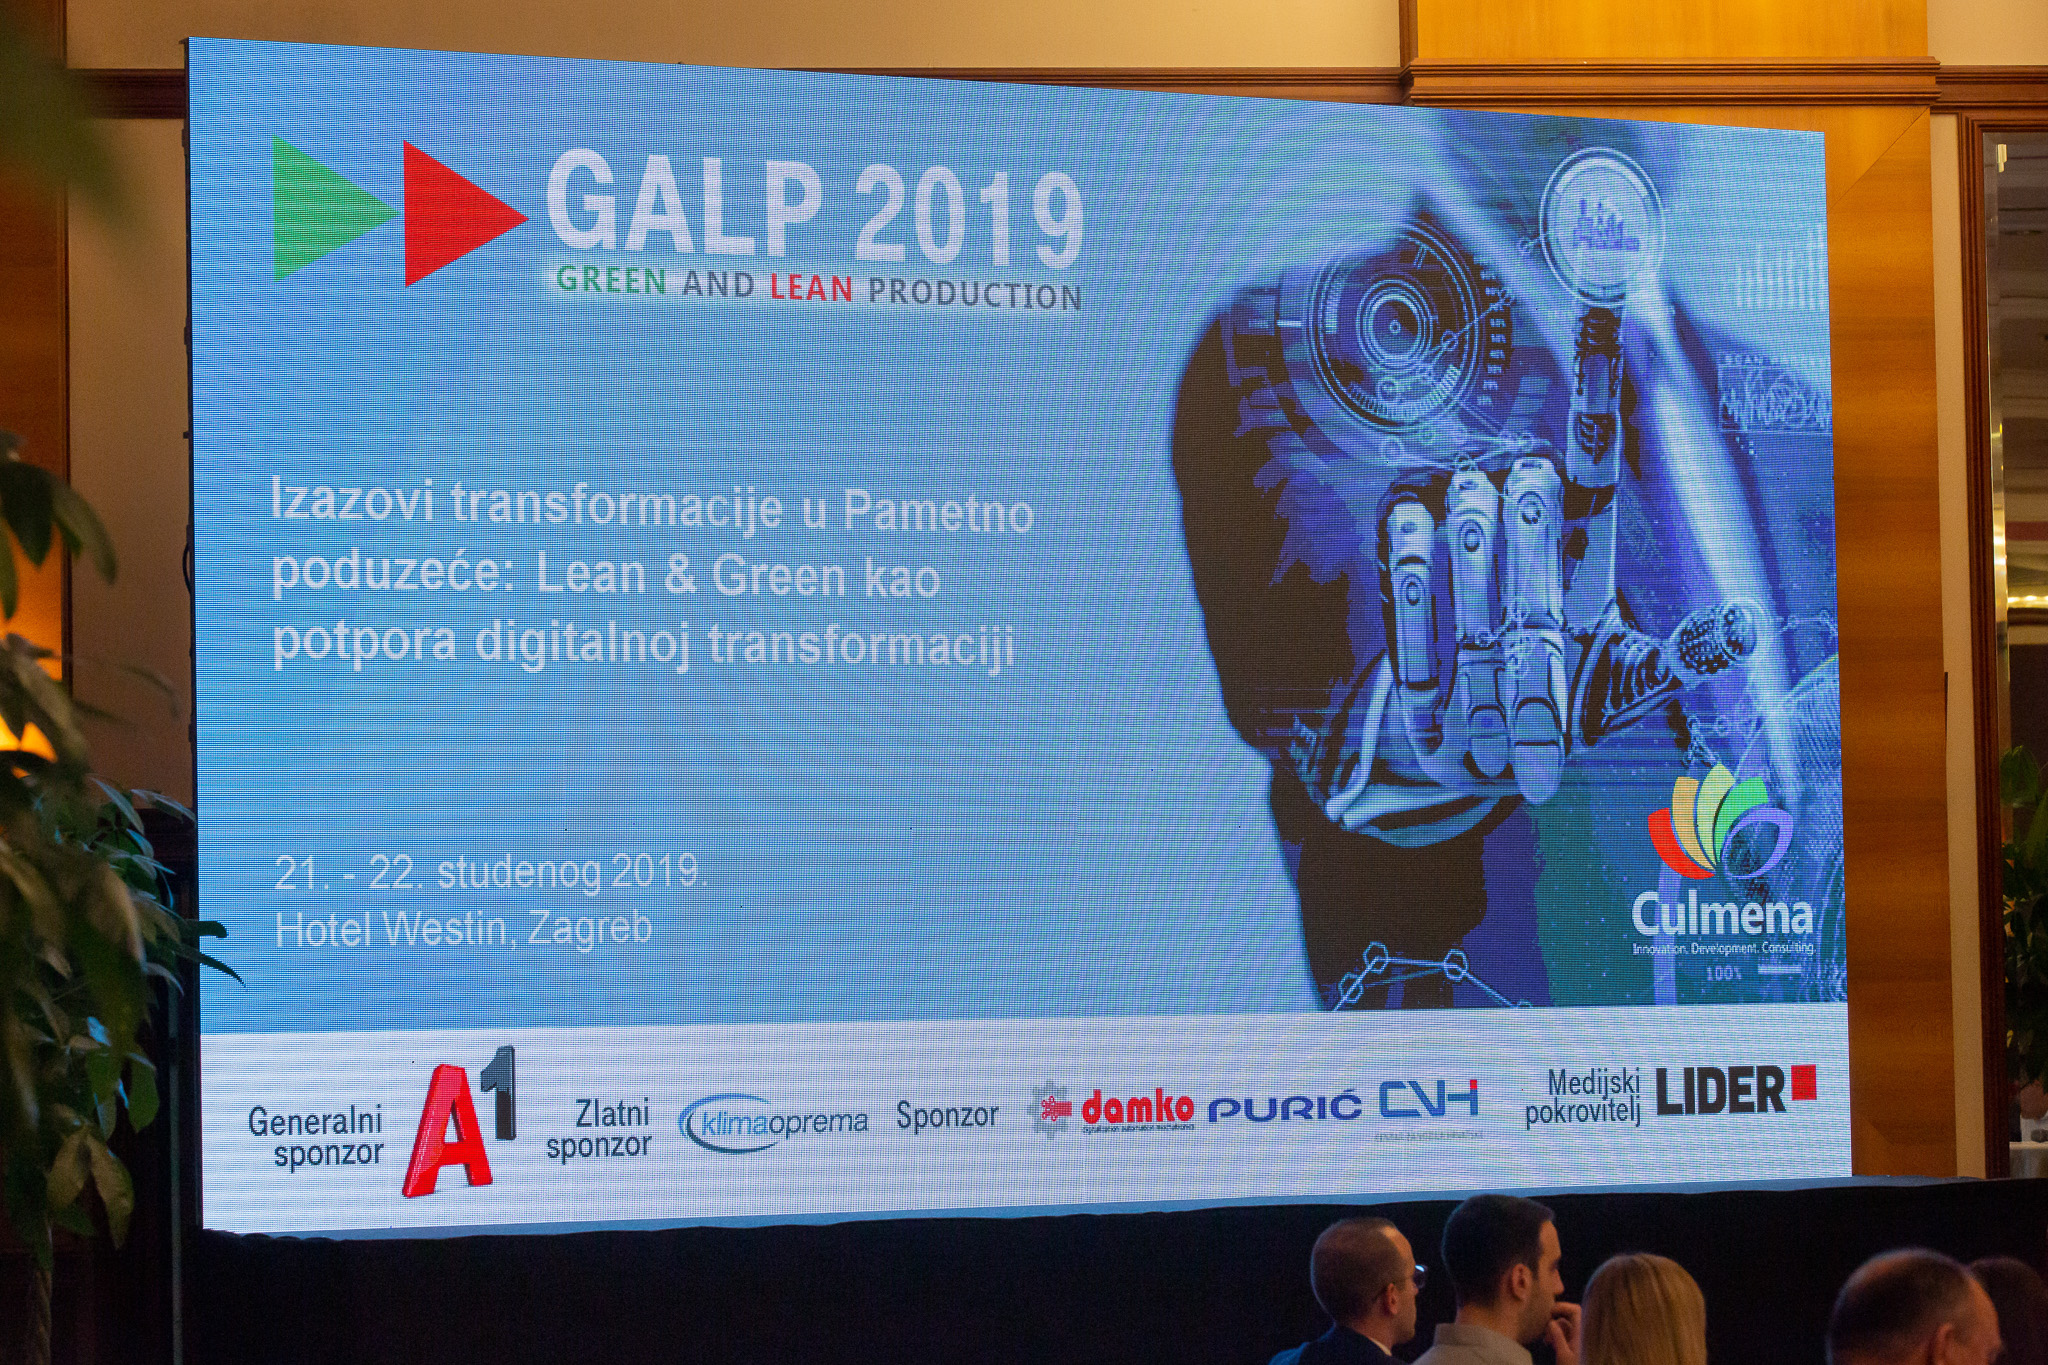 Green and Lean Production (GALP) 2019